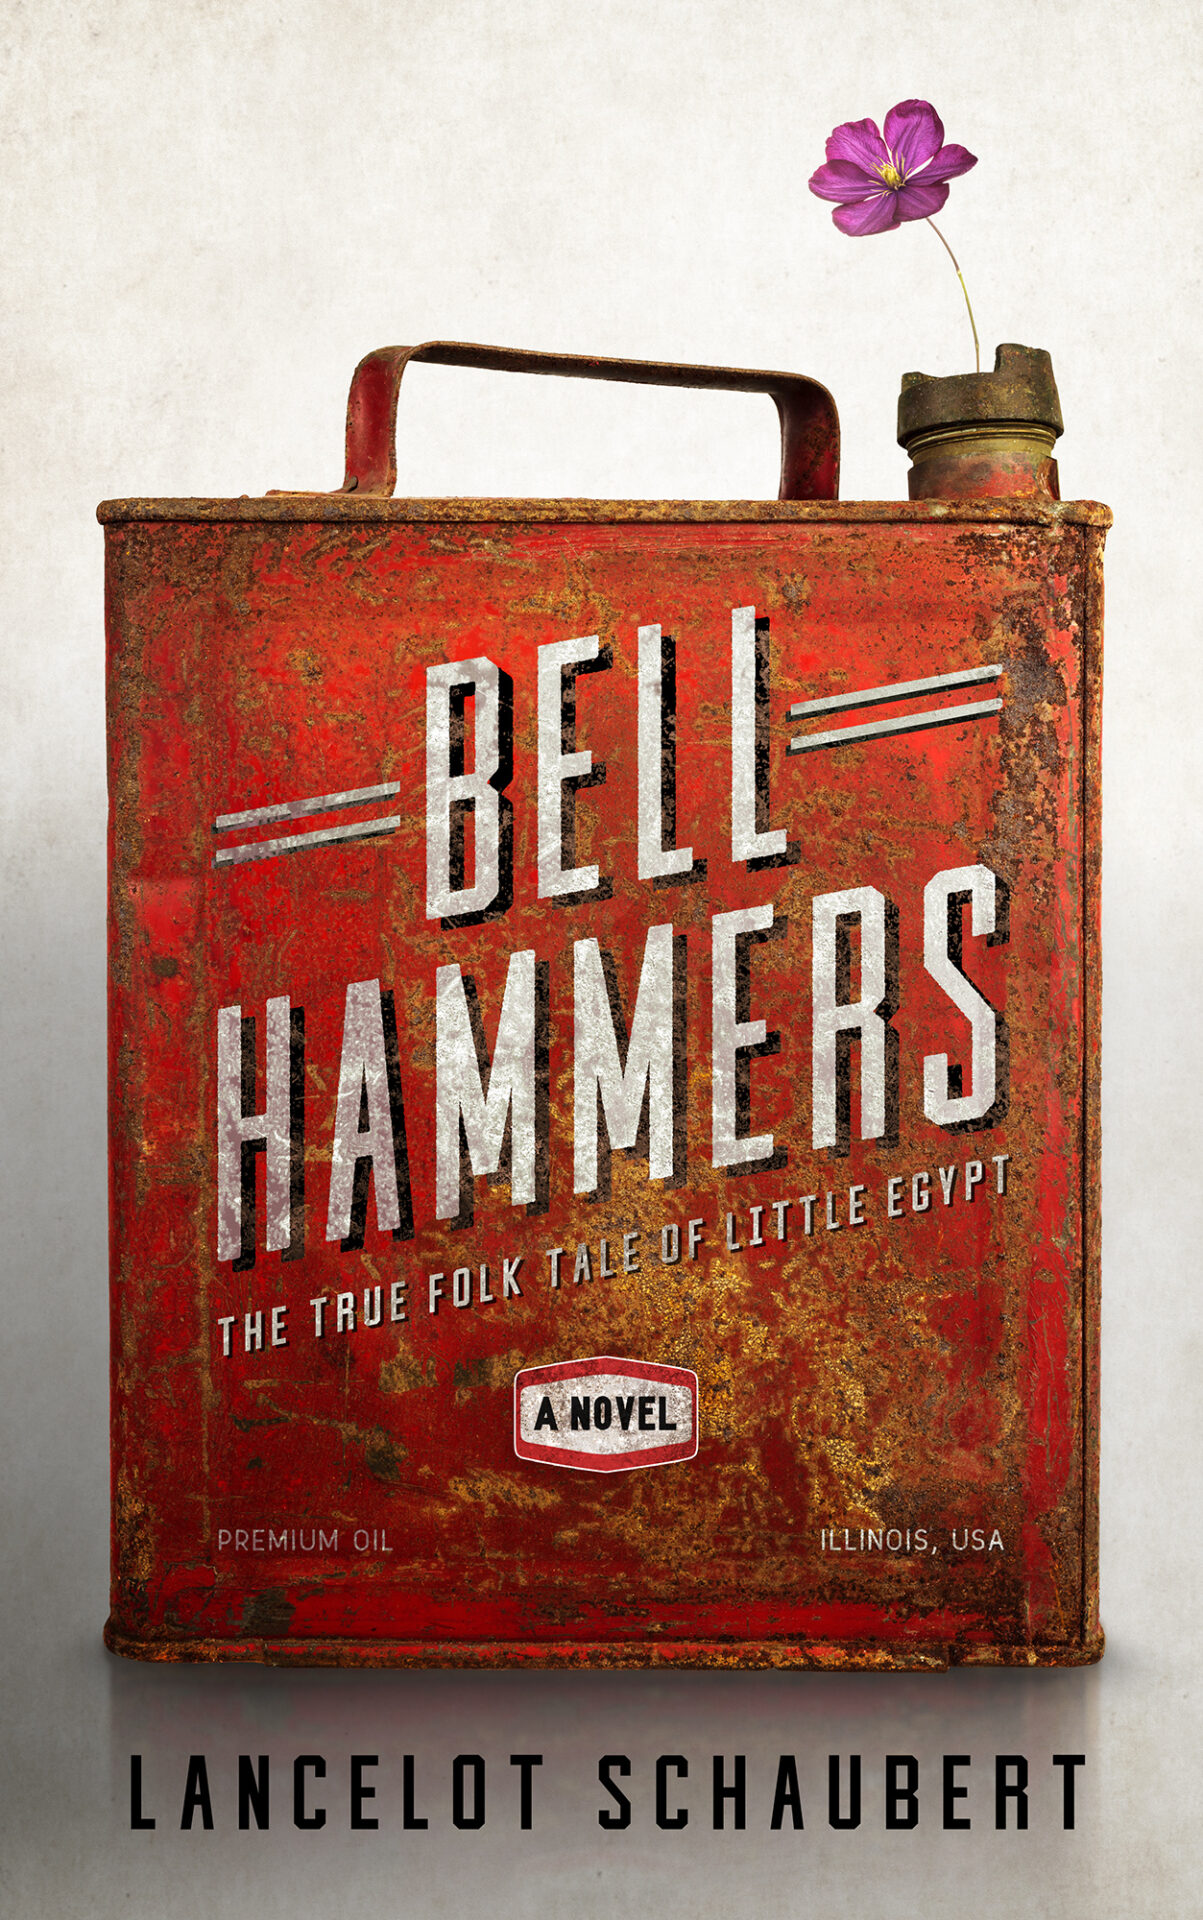 FC Bell Hammers